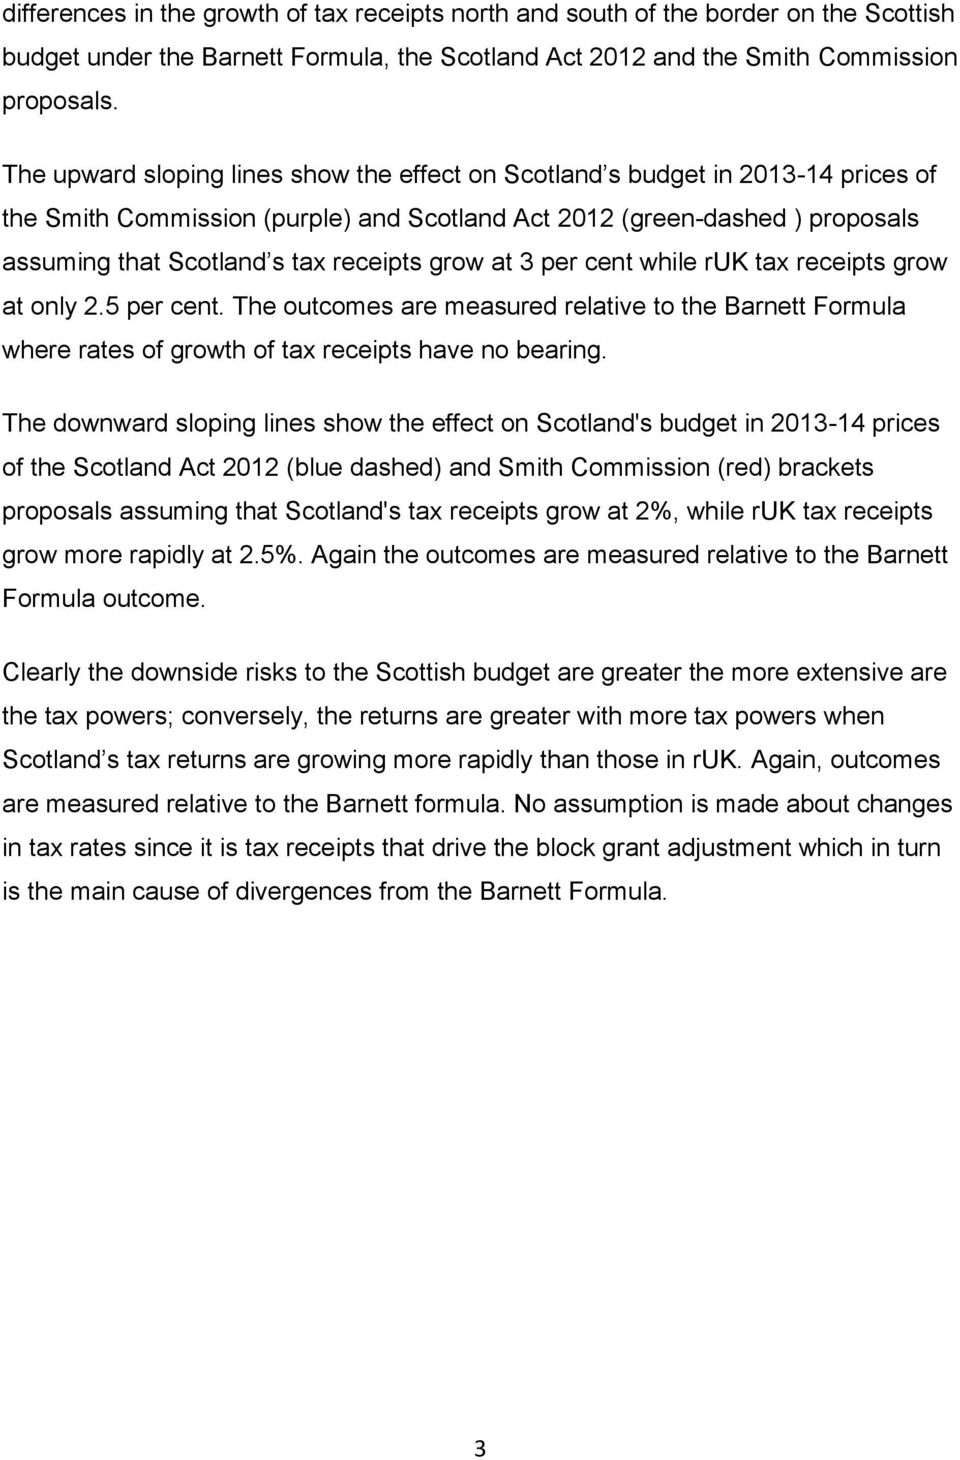 grow at 3 per cent while ruk tax receipts grow at only 2.5 per cent. The outcomes are measured relative to the Barnett Formula where rates of growth of tax receipts have no bearing.